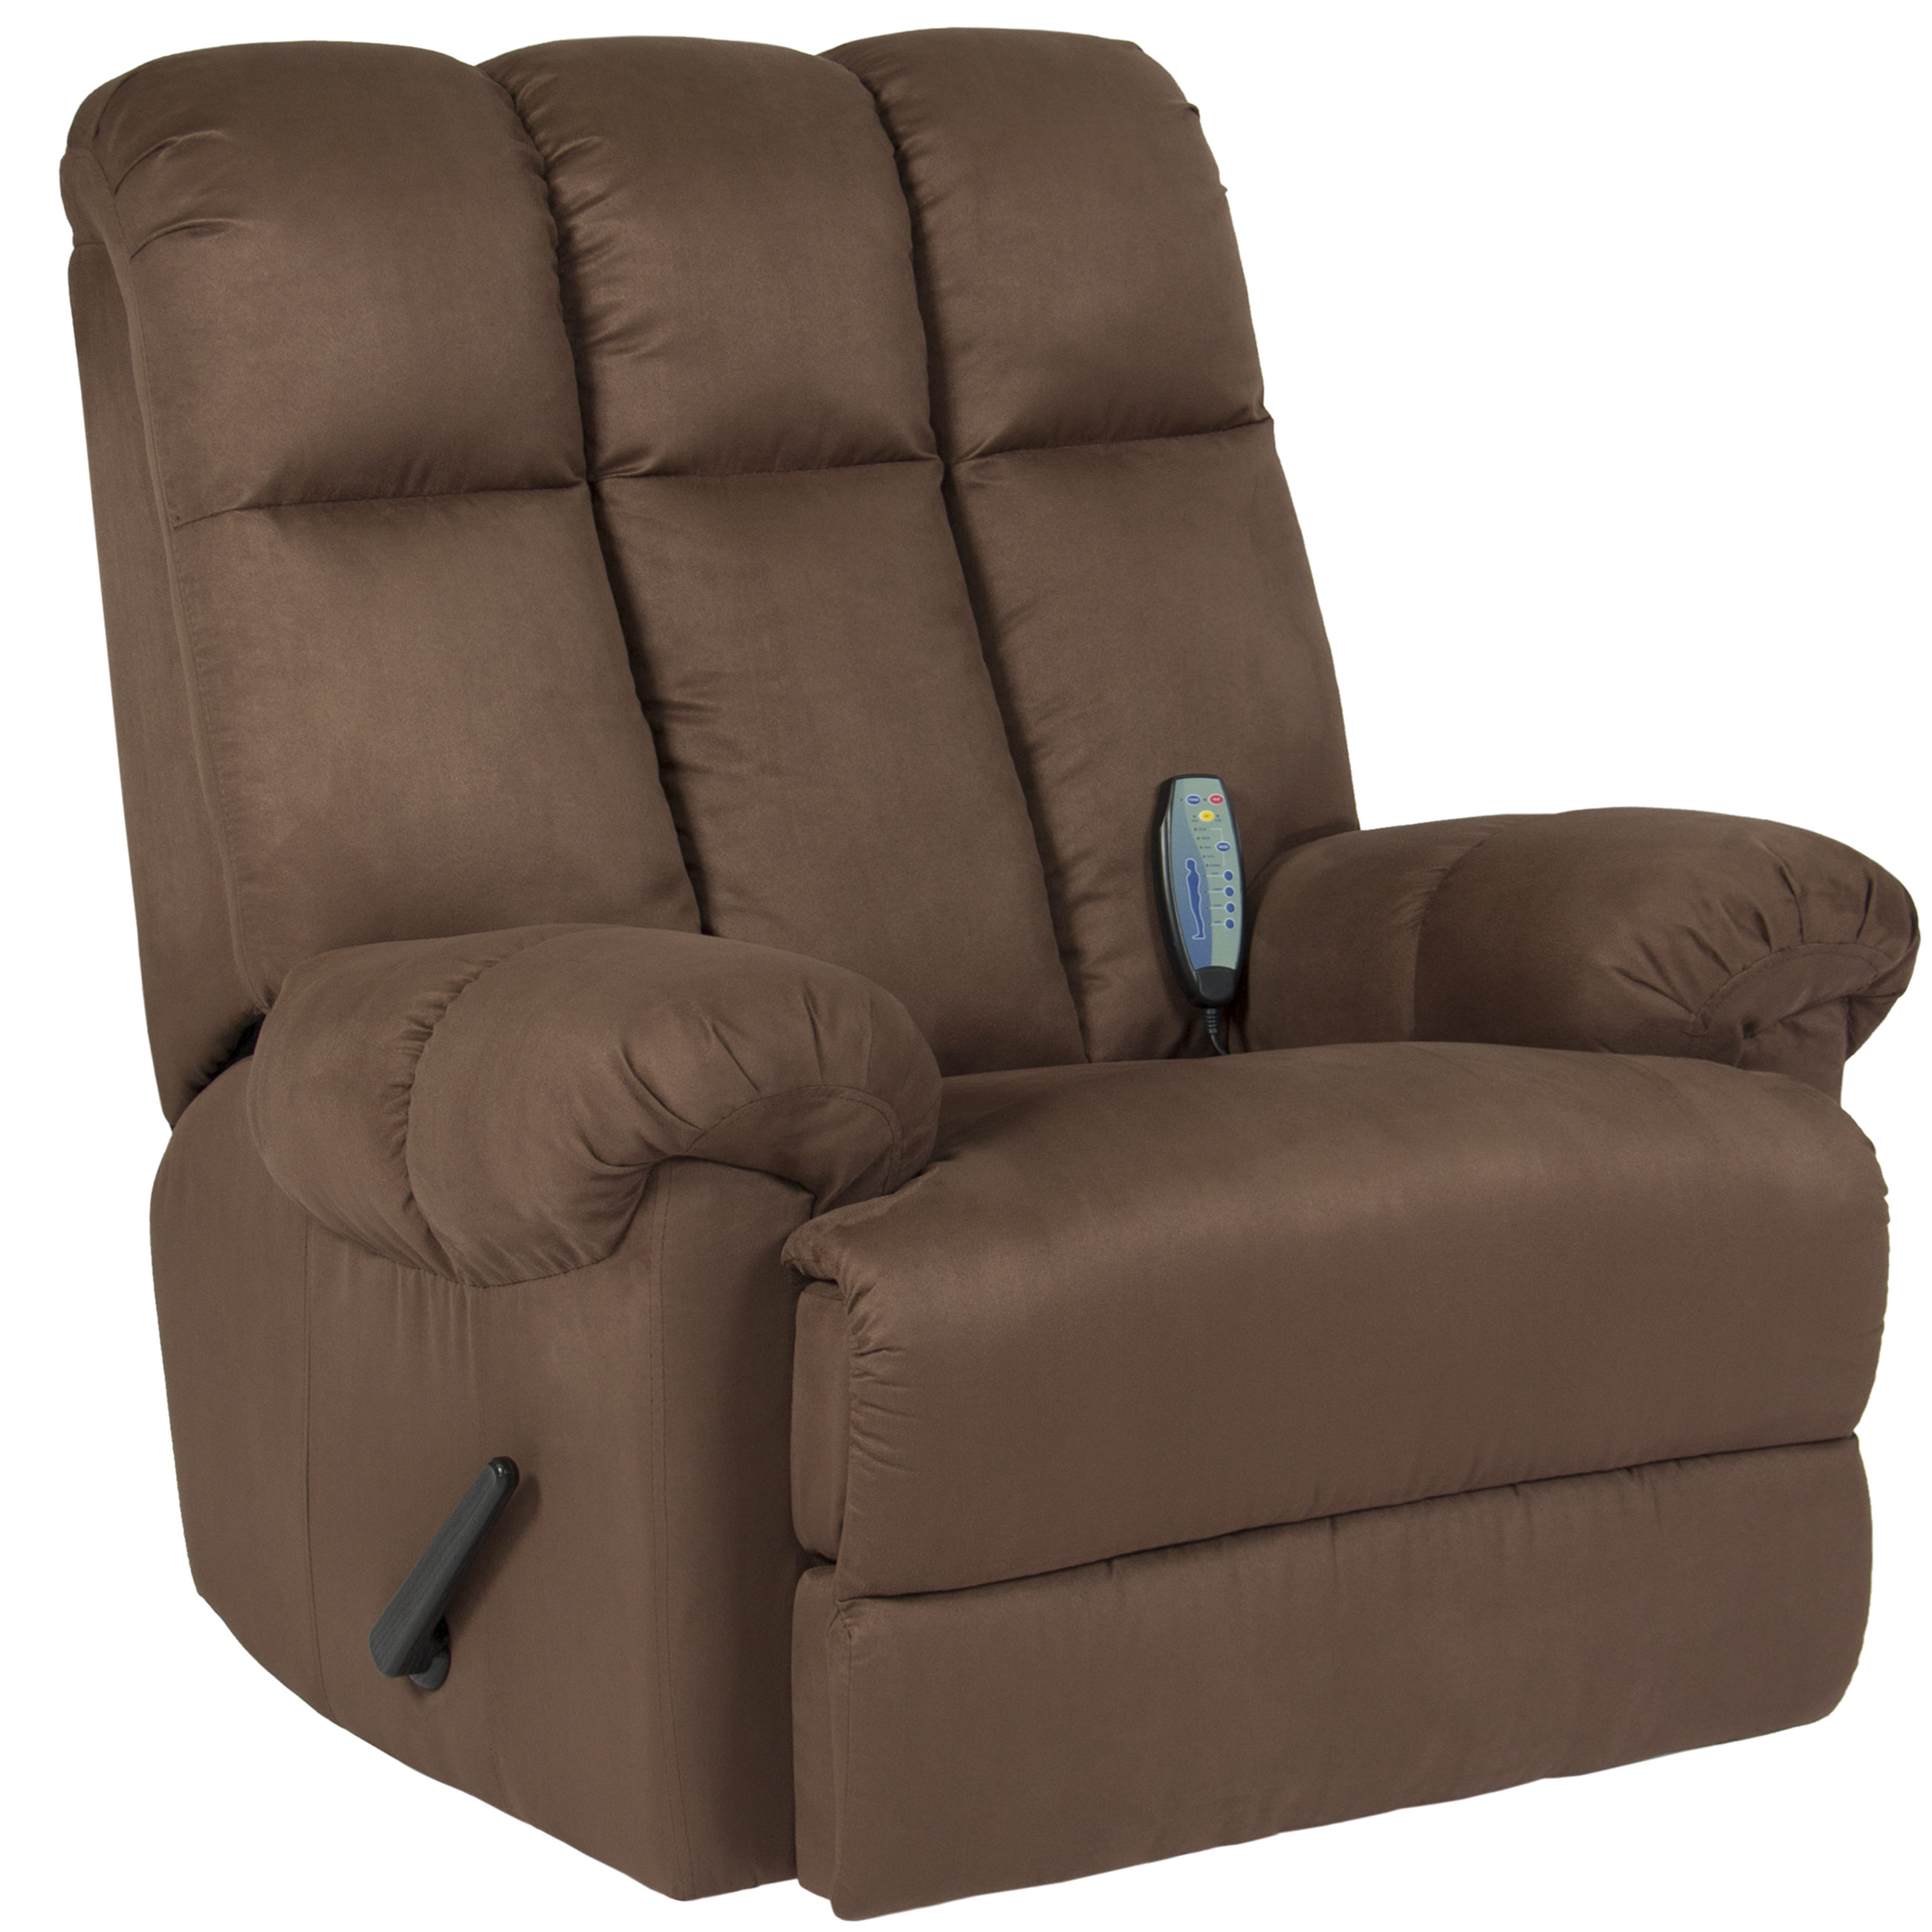 Best Choice Products Deluxe Microfiber Rocker Massage Recliner Heated Sofa  Chair   Brown